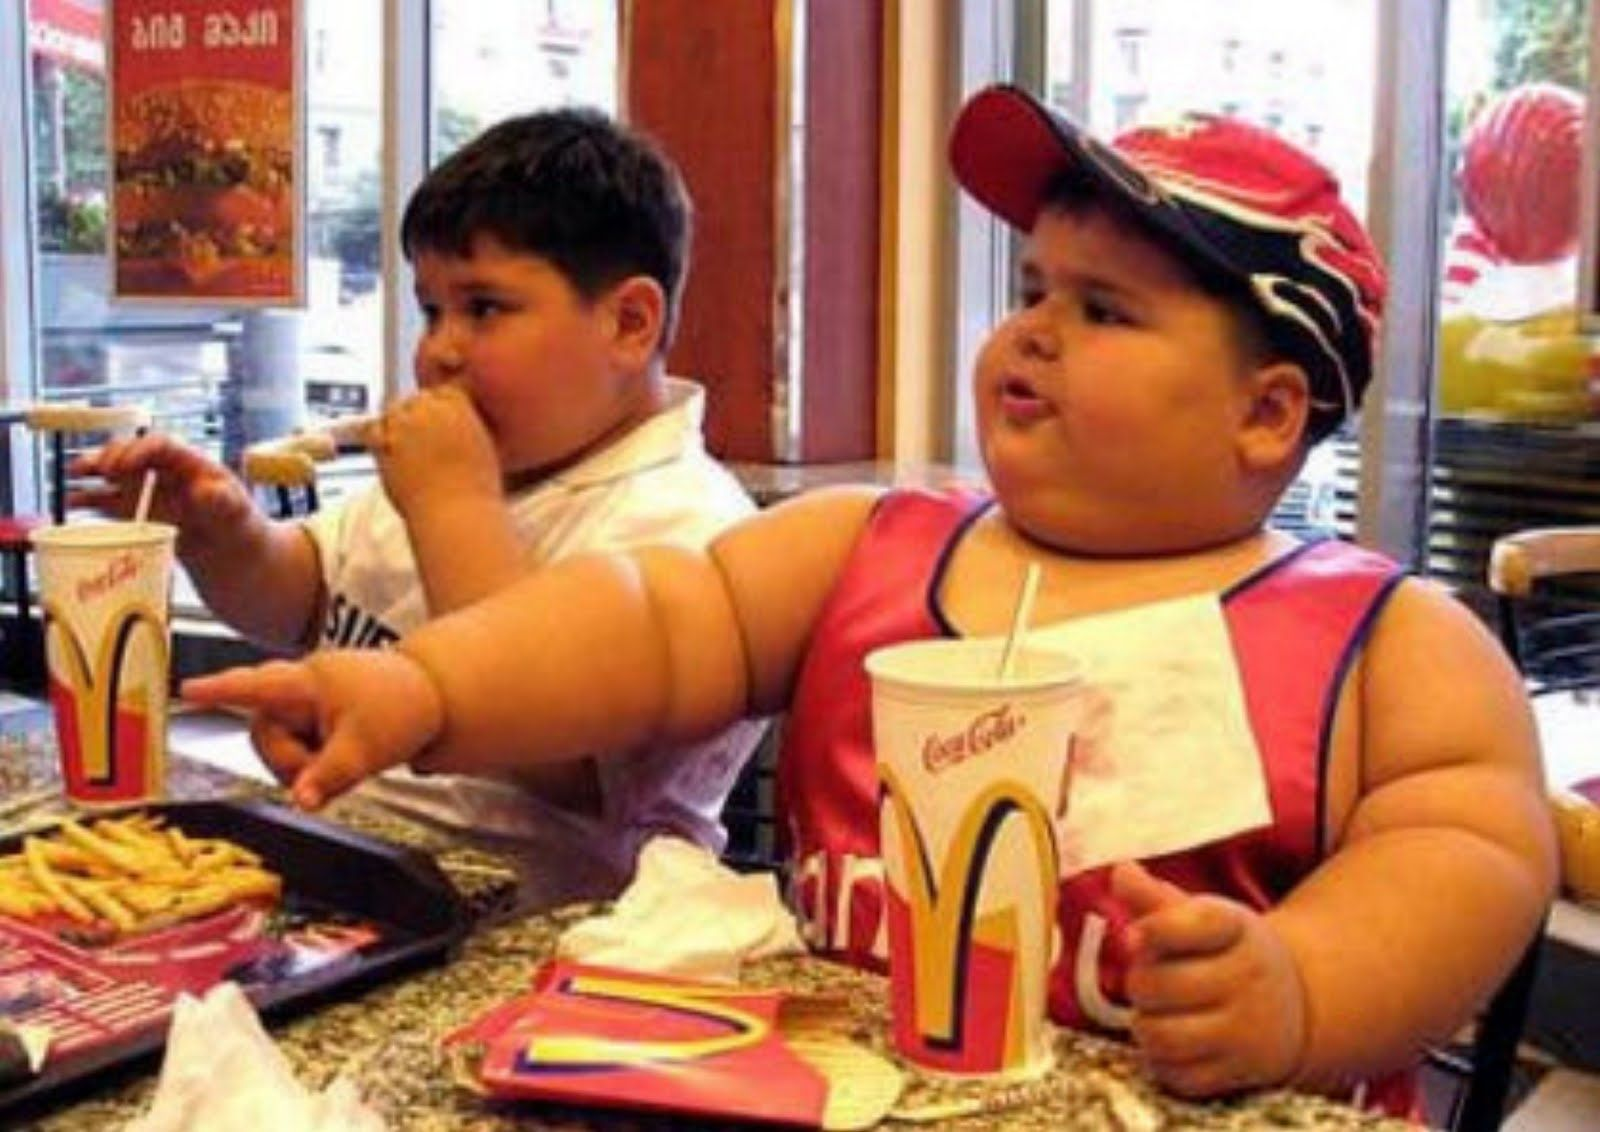 3. McDonald's Doesn't Acknowledge Its Part In Childhood Obesity